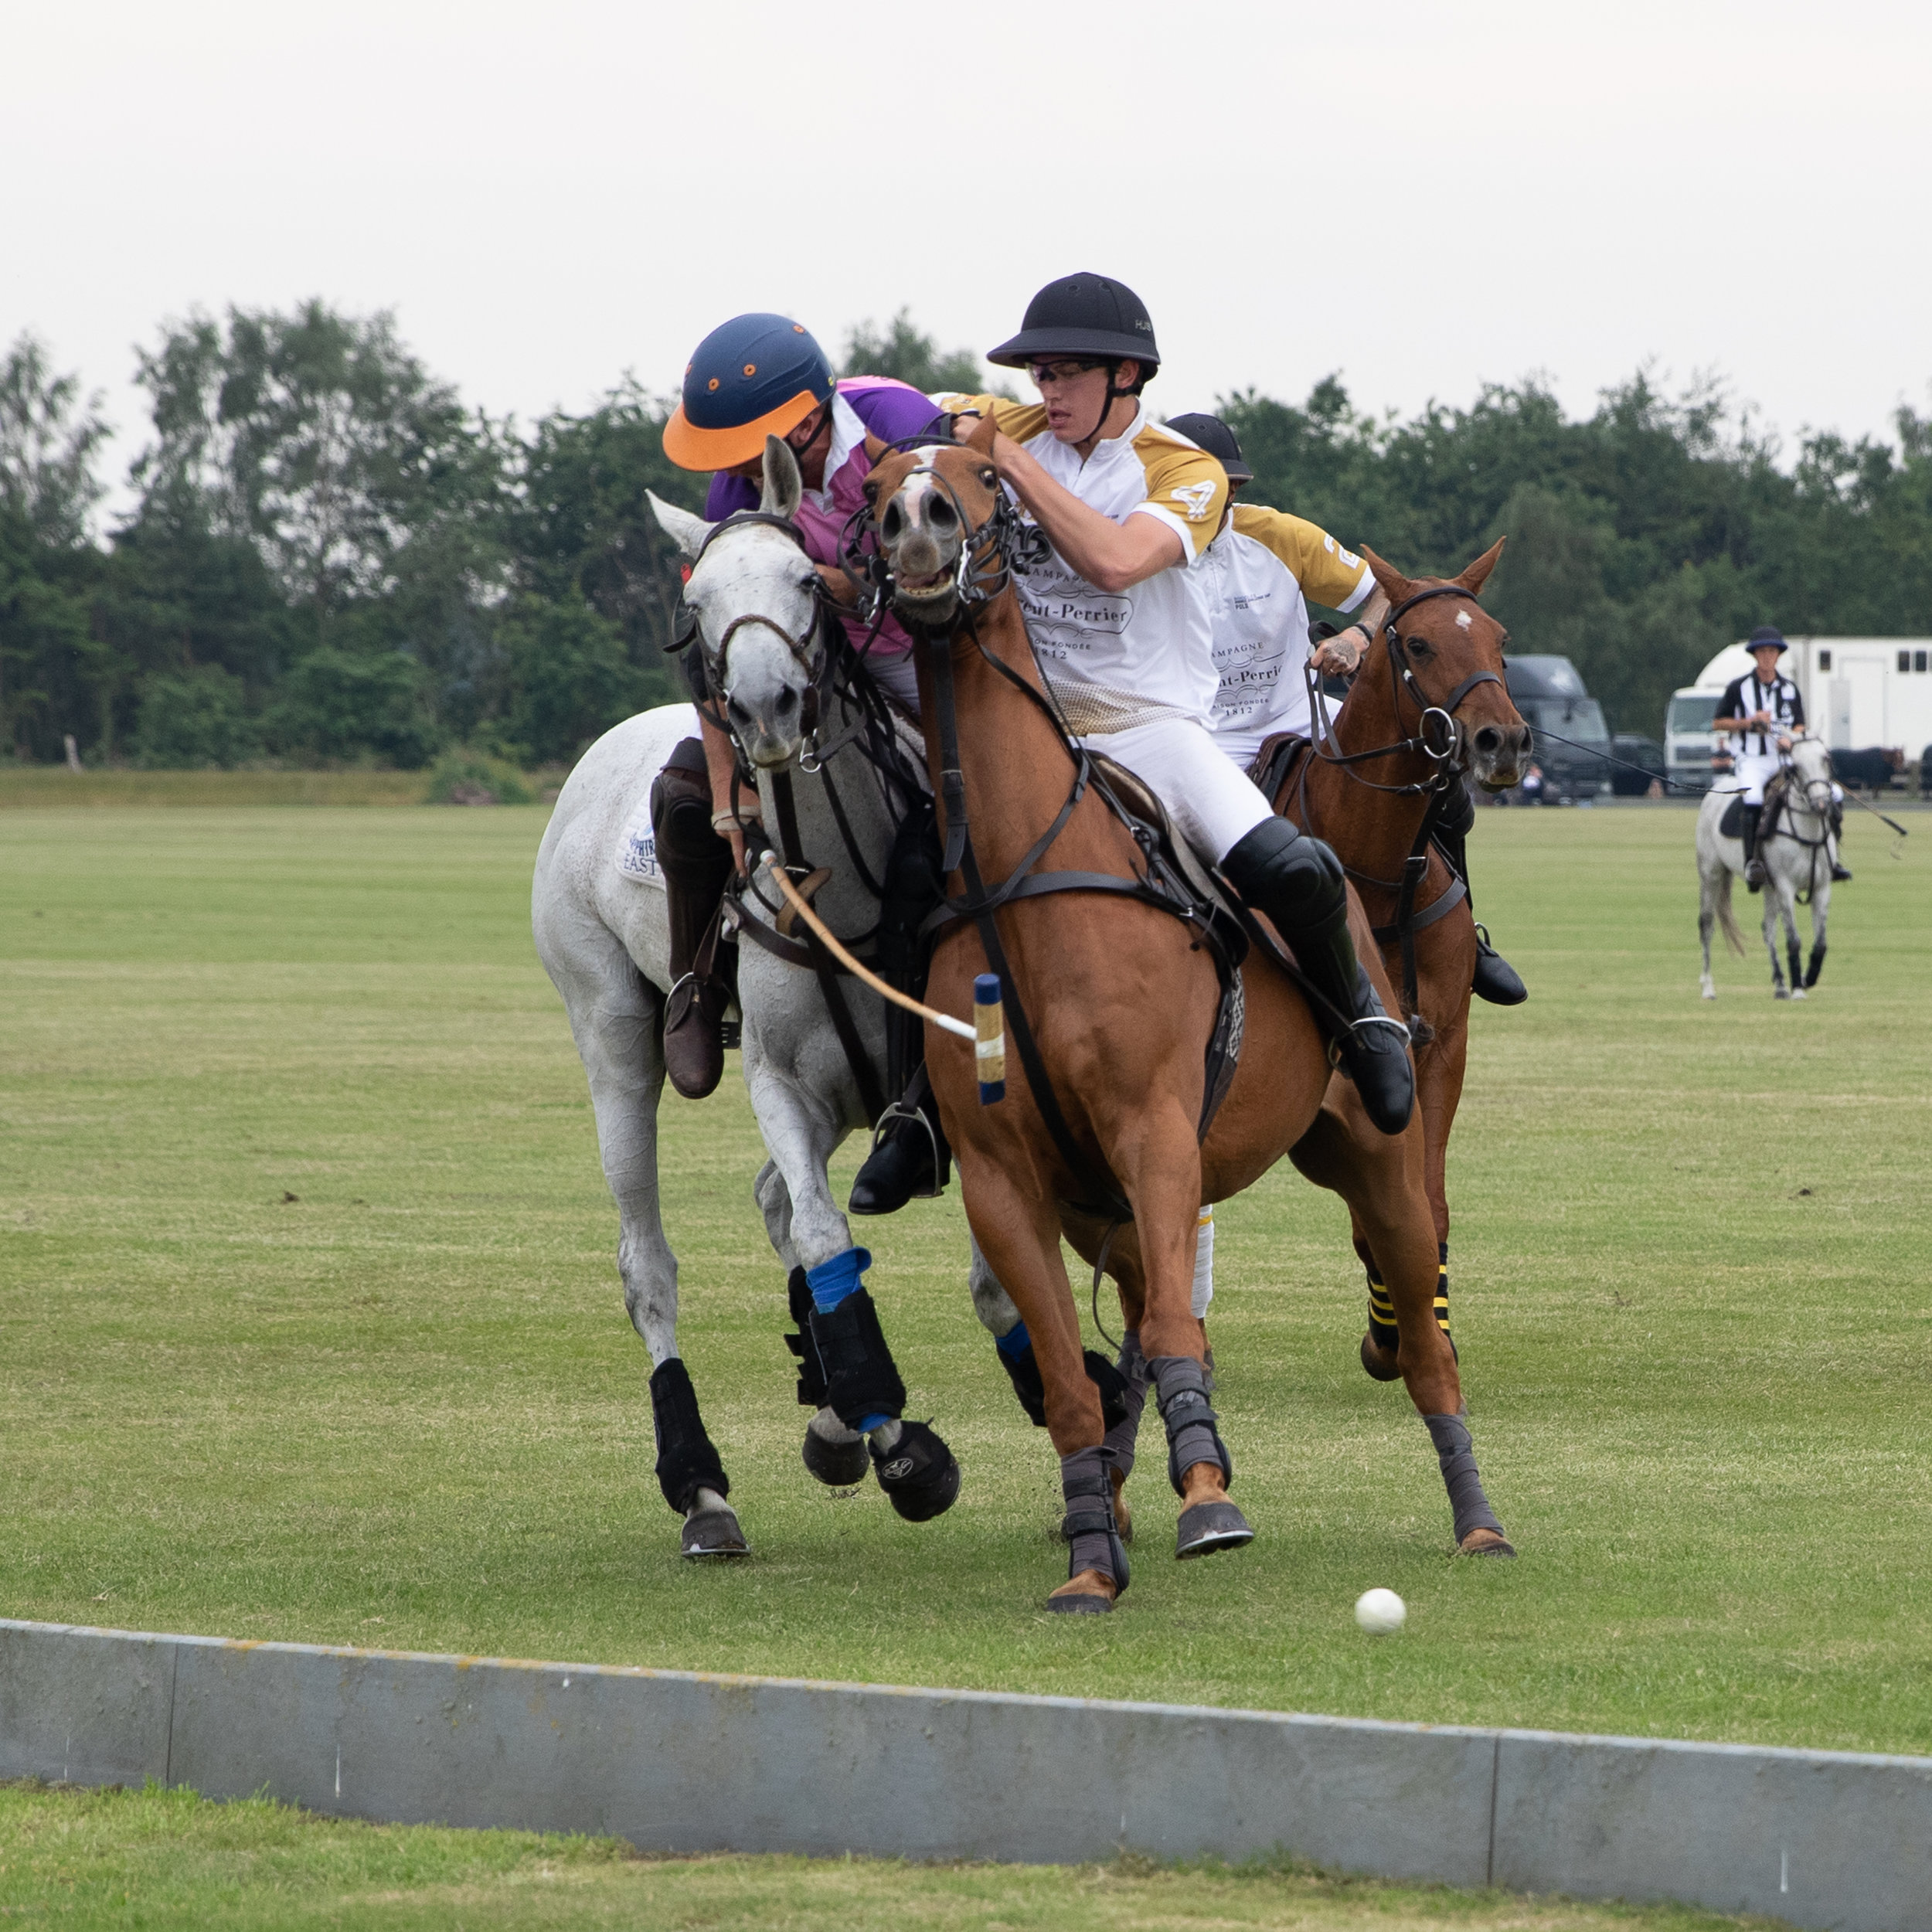 Polo horses clash during Sunday's Hospitality Action's fund raiser at West Cheshire Polo Club